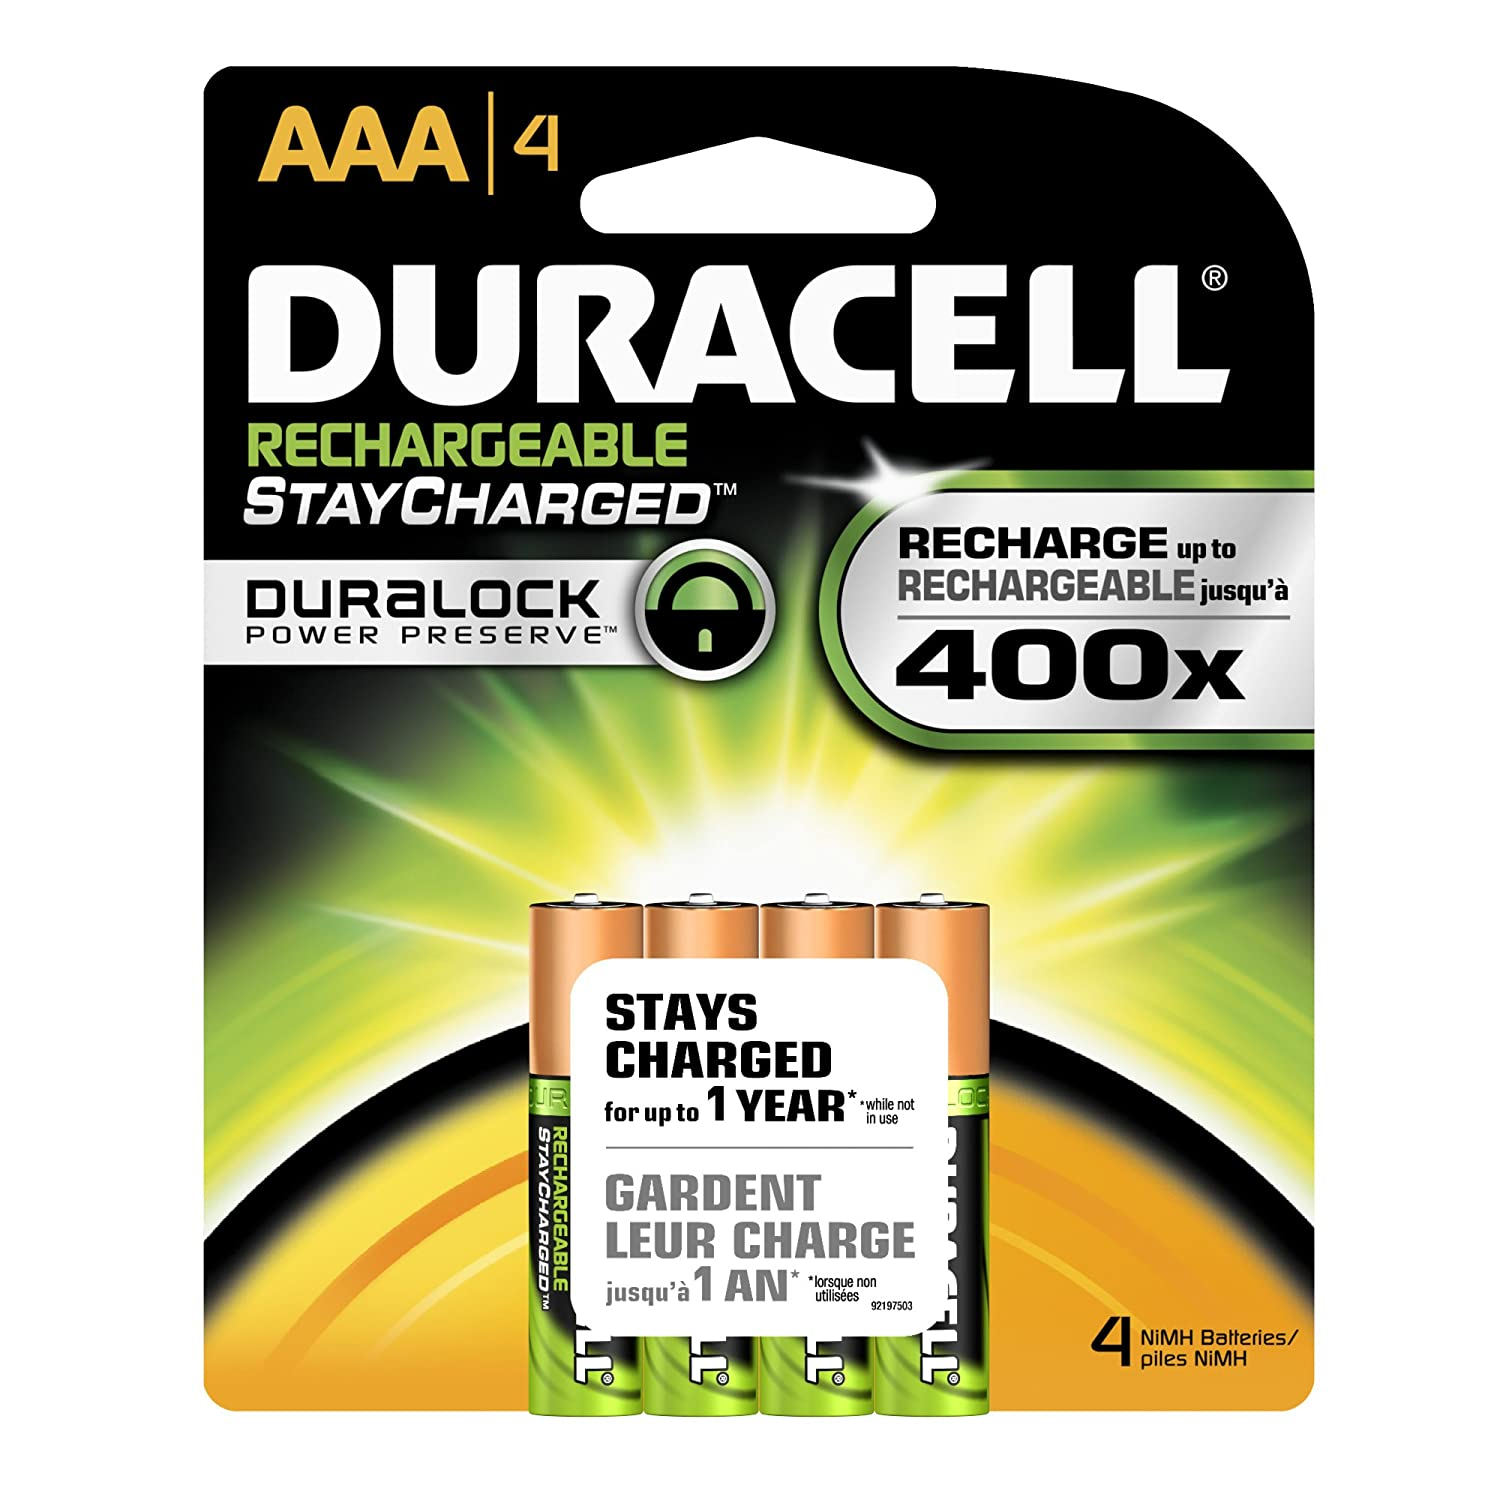 Amazon - 4 Duracell Rechargeables StayCharged AAA Batteries - $5.50